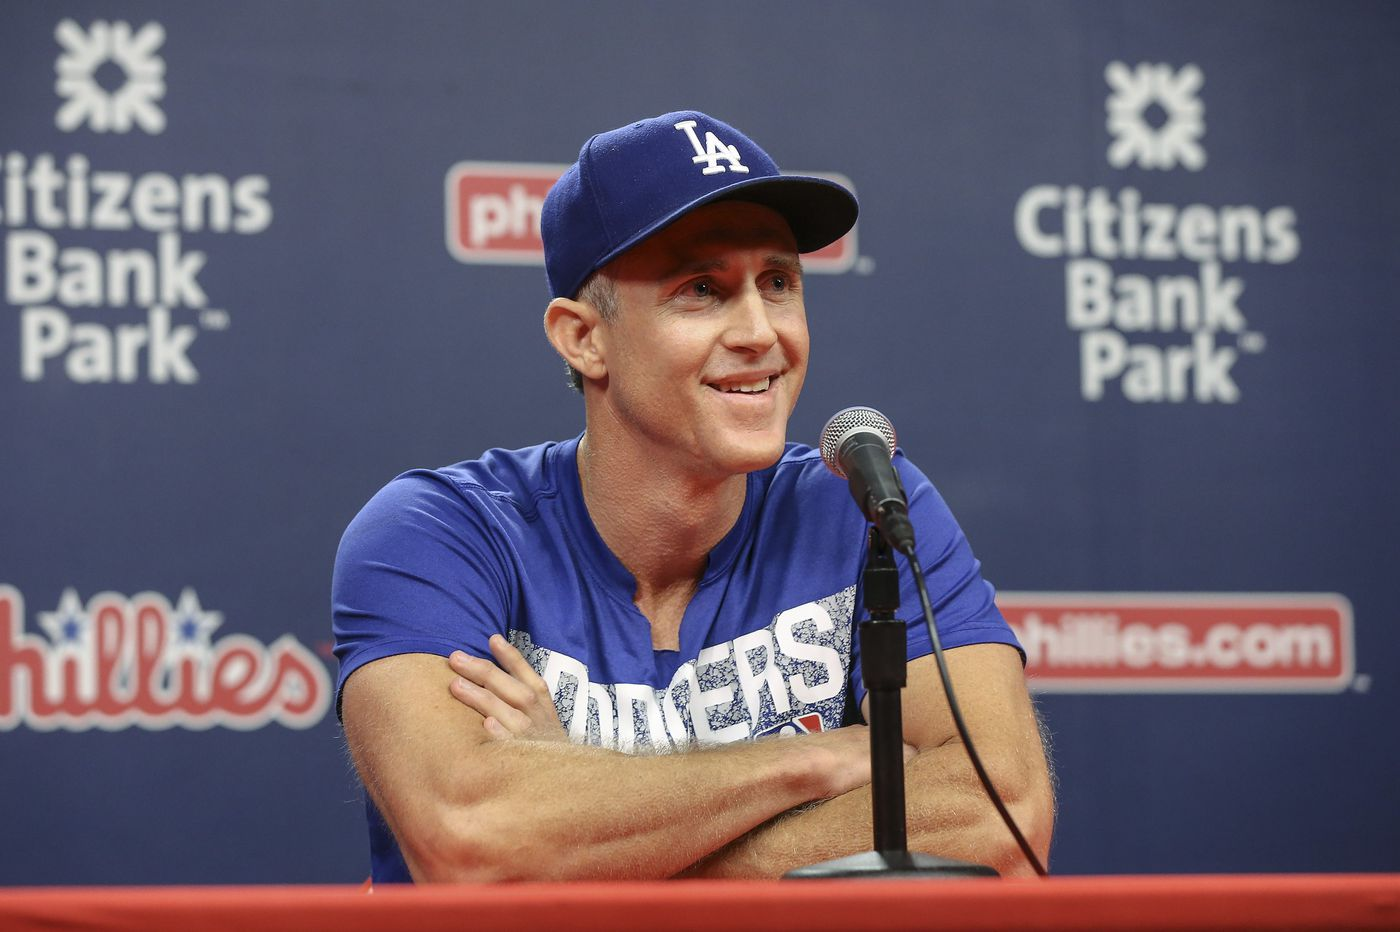 Chase Utley will start for Dodgers on Monday in return to Philly